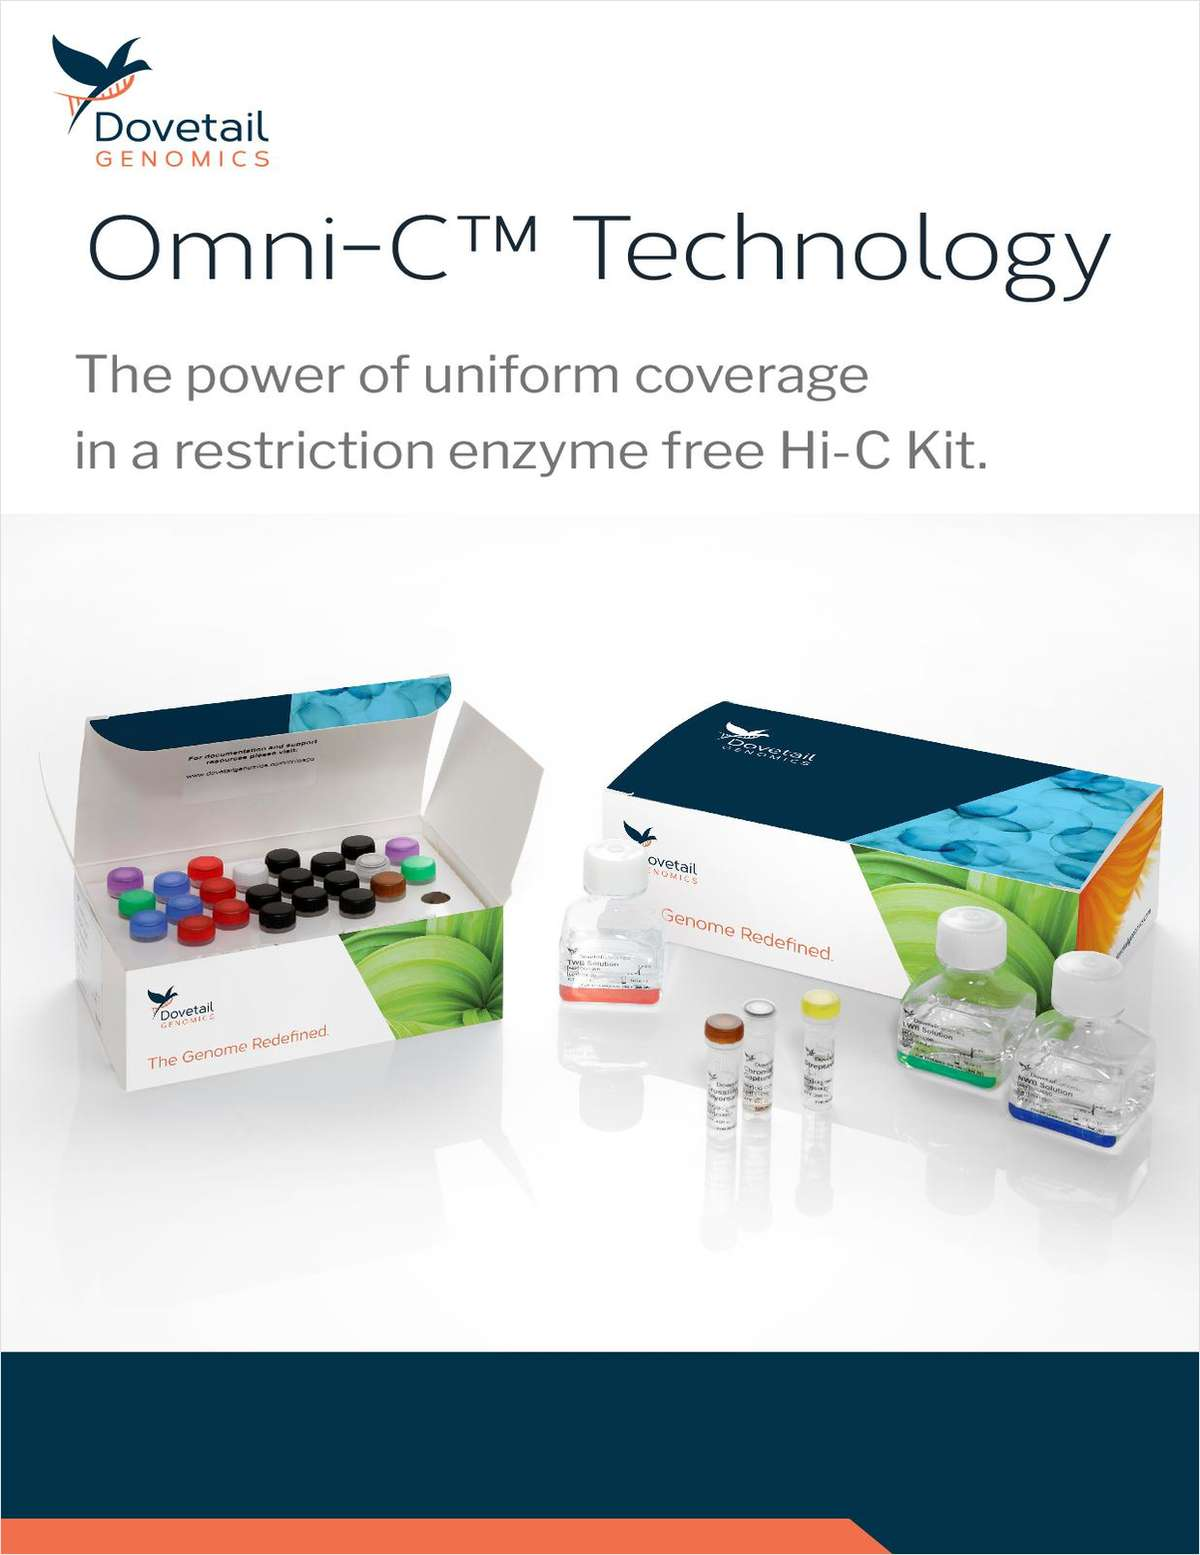 Omni-C Technology: The Power of Uniform Coverage in a Restriction Enzyme Free Hi-C Kit